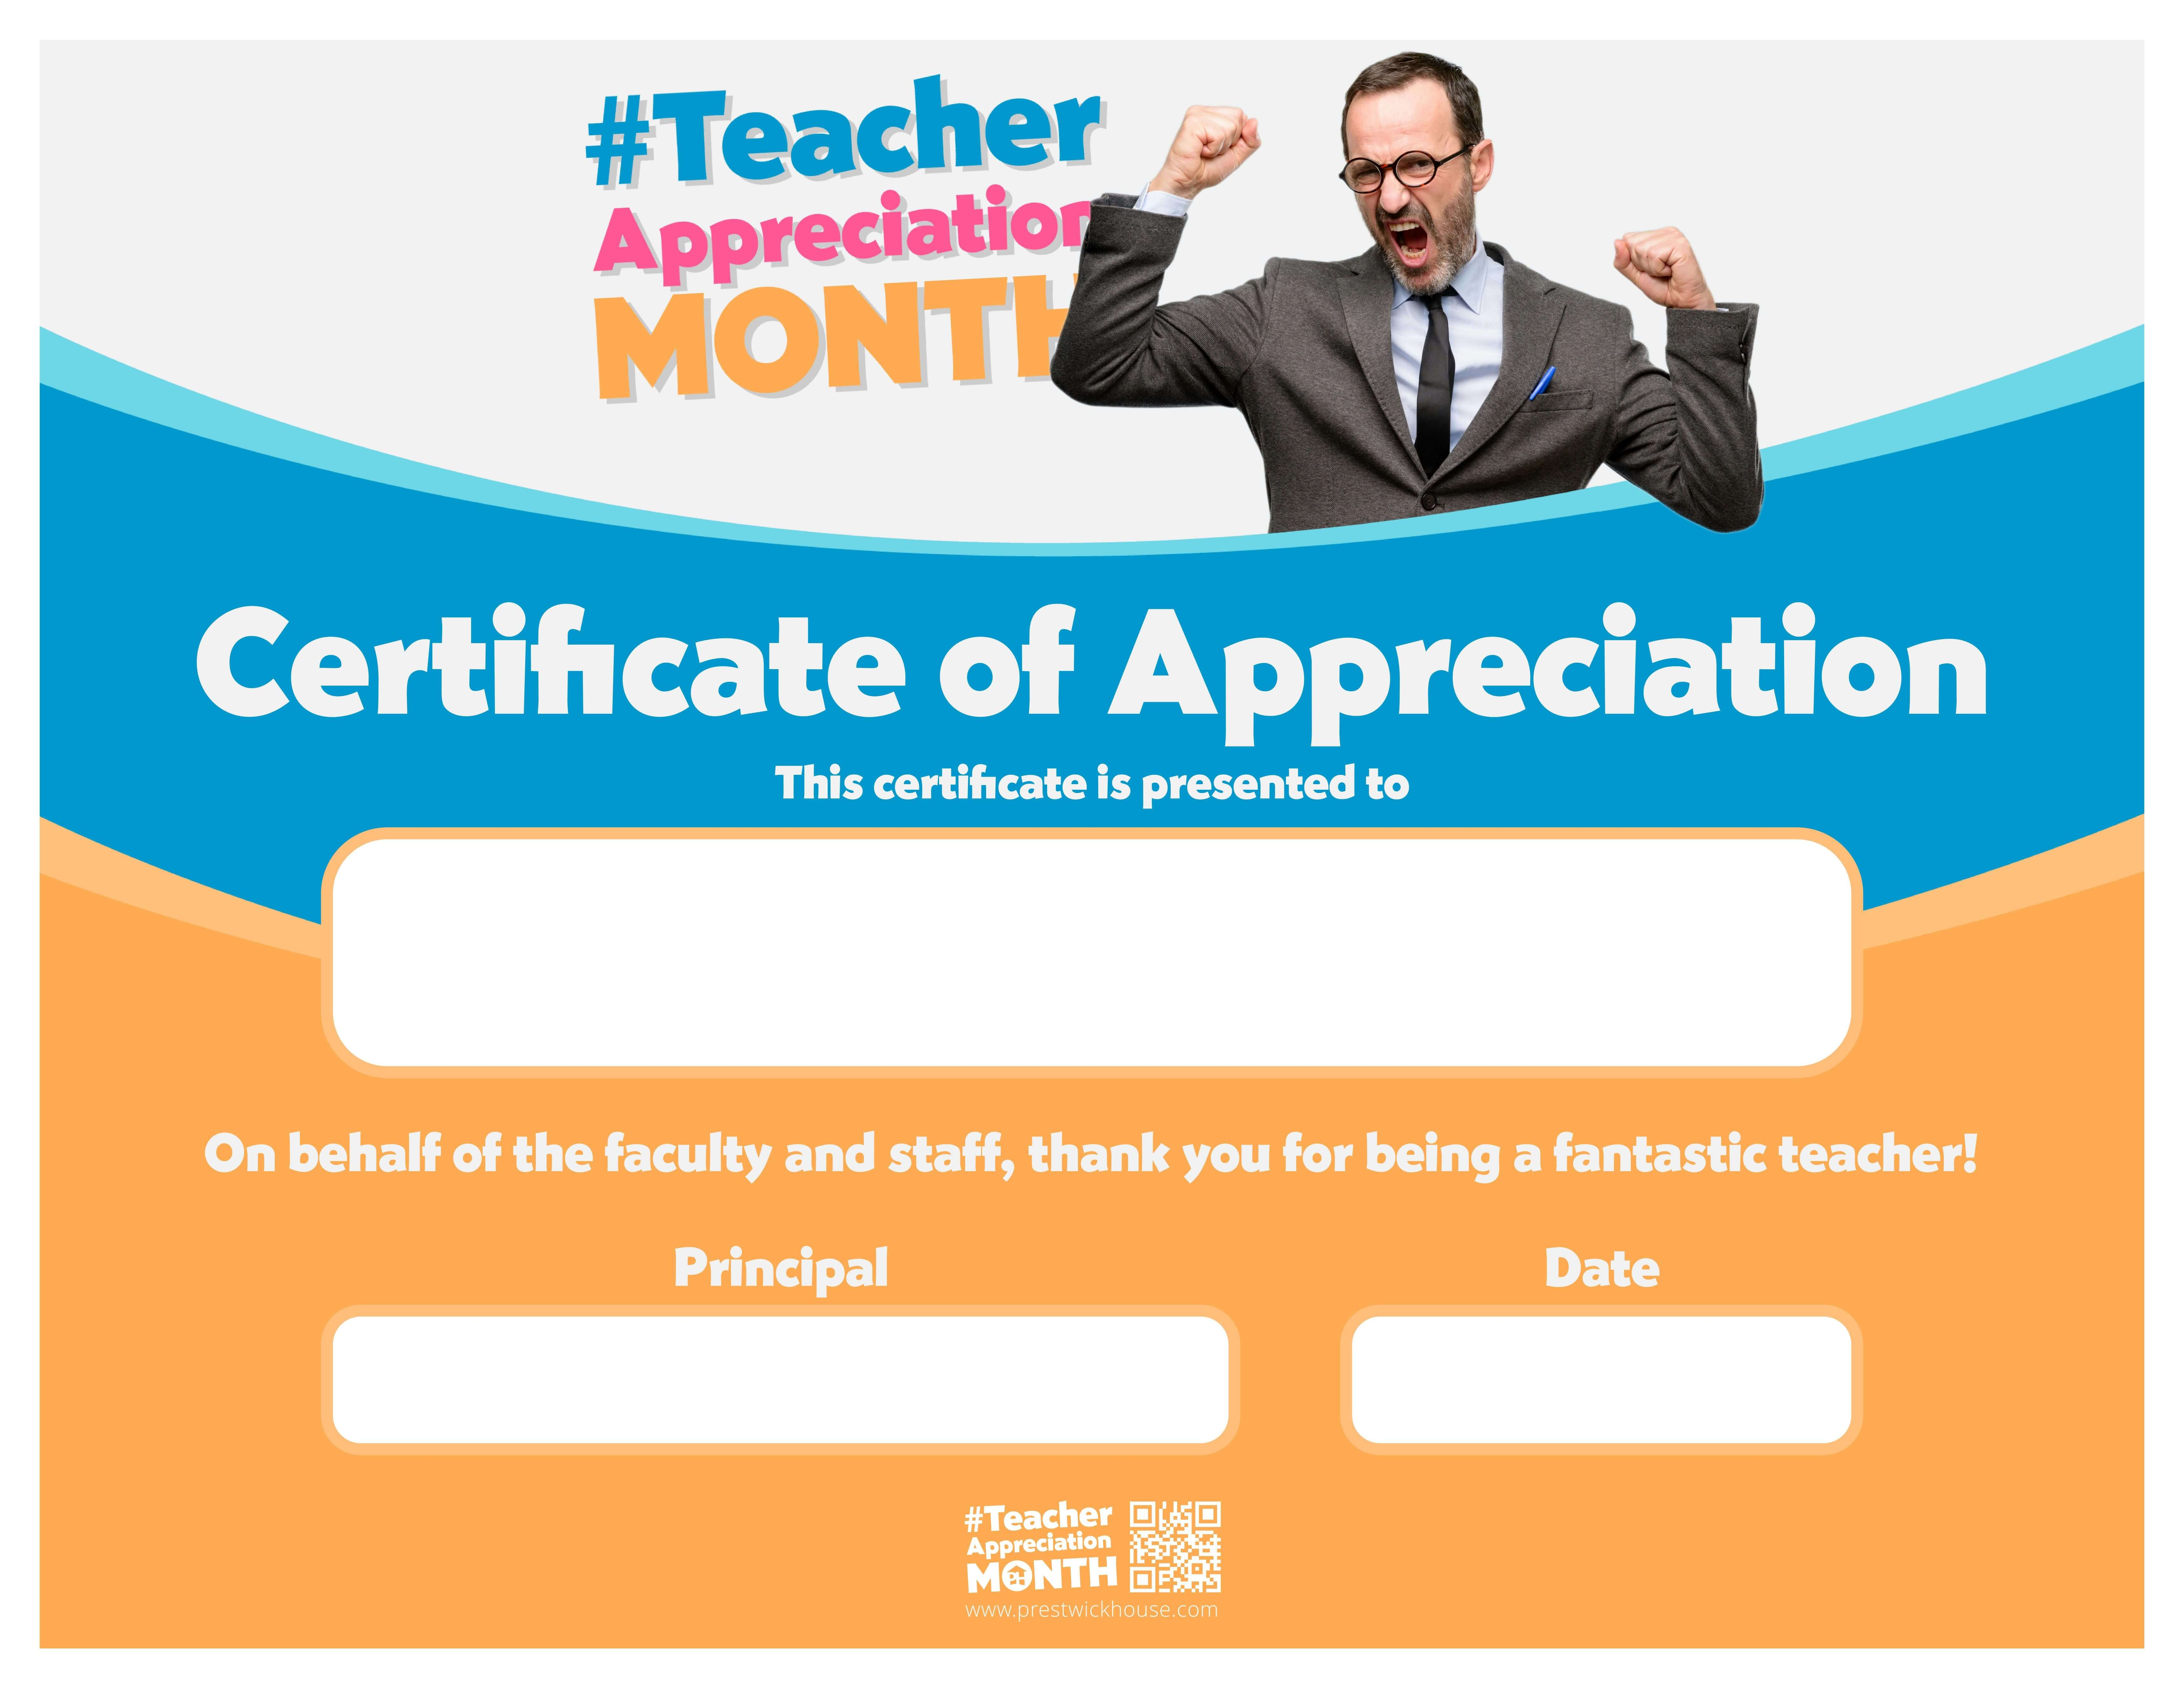 Teacher Appreciation Month - Certificates of Appreciation